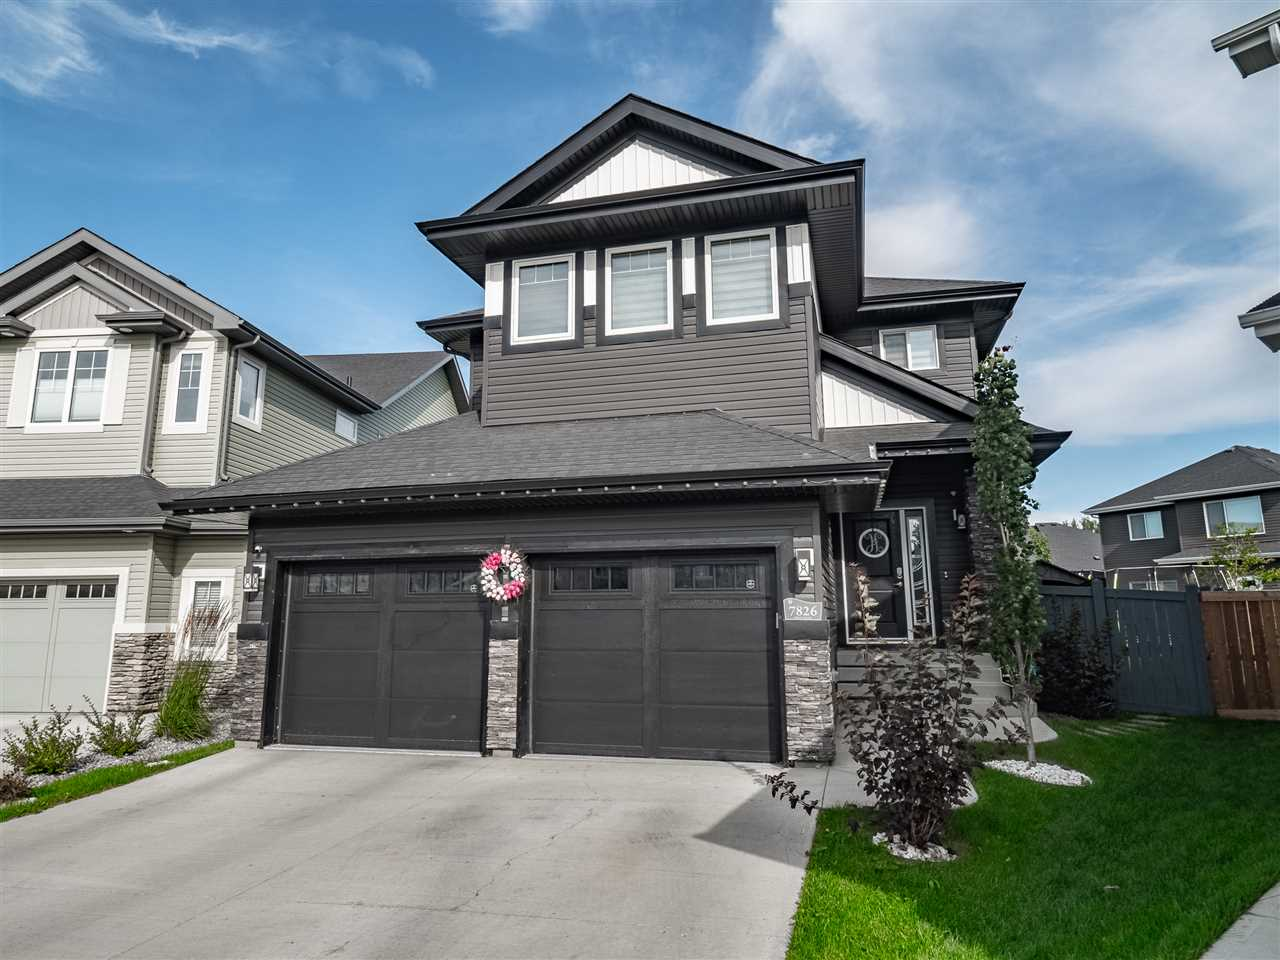 MLS® listing #E4170826 for sale located at 7826 Getty Wynd NW